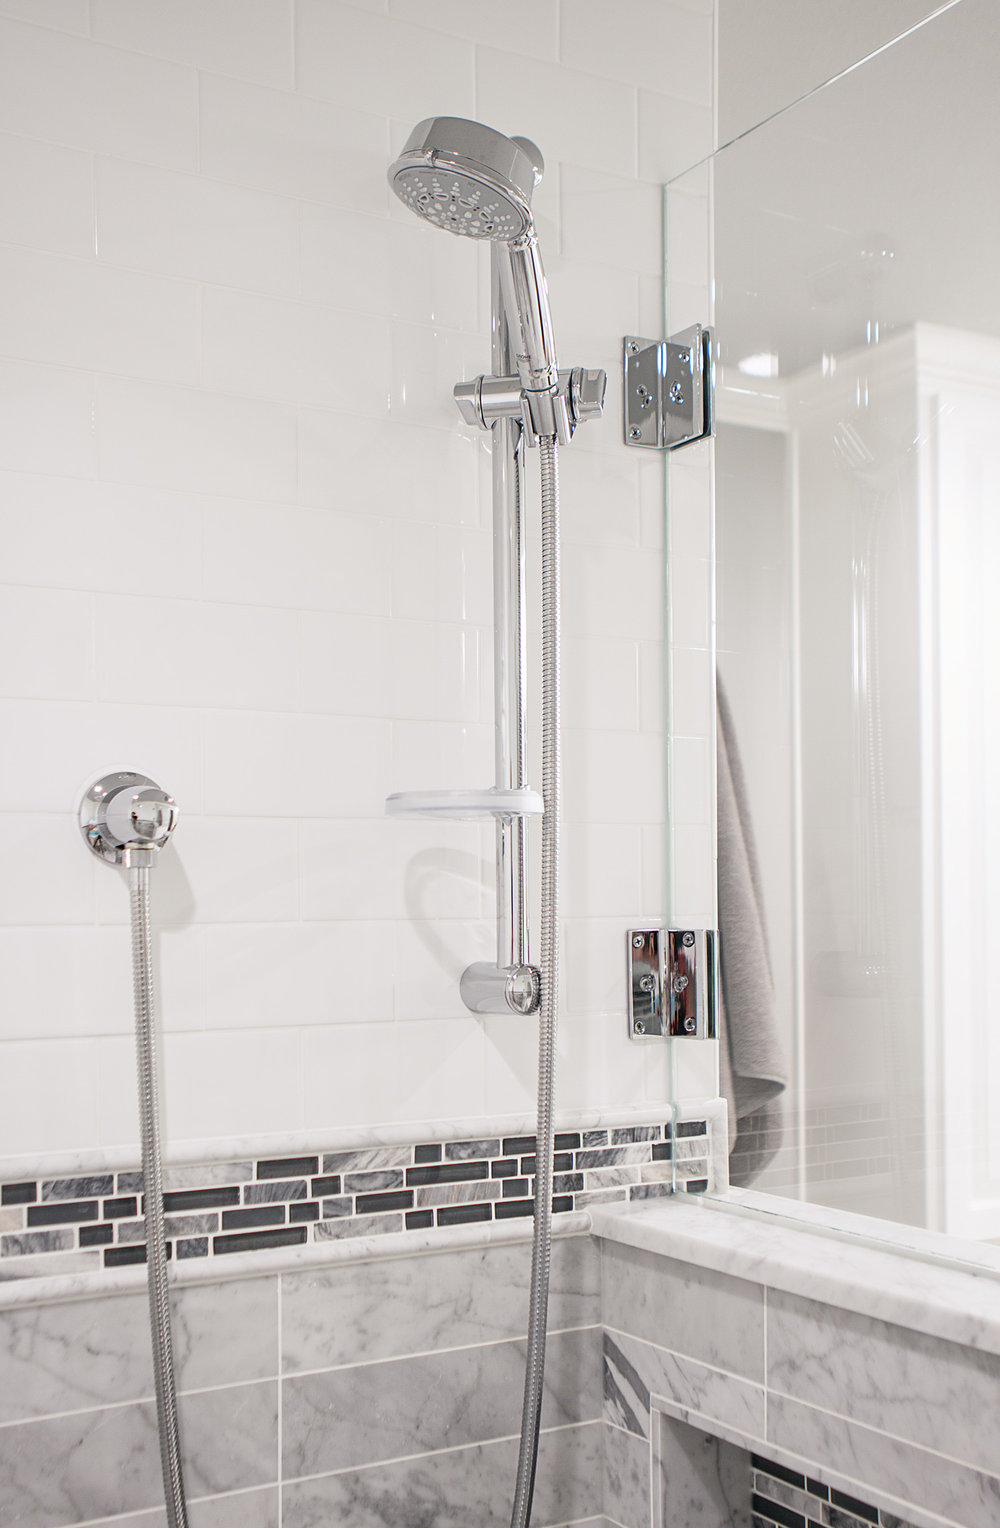 Bath-Detail-Plumbing-Shower-Handheld-1.2.jpg